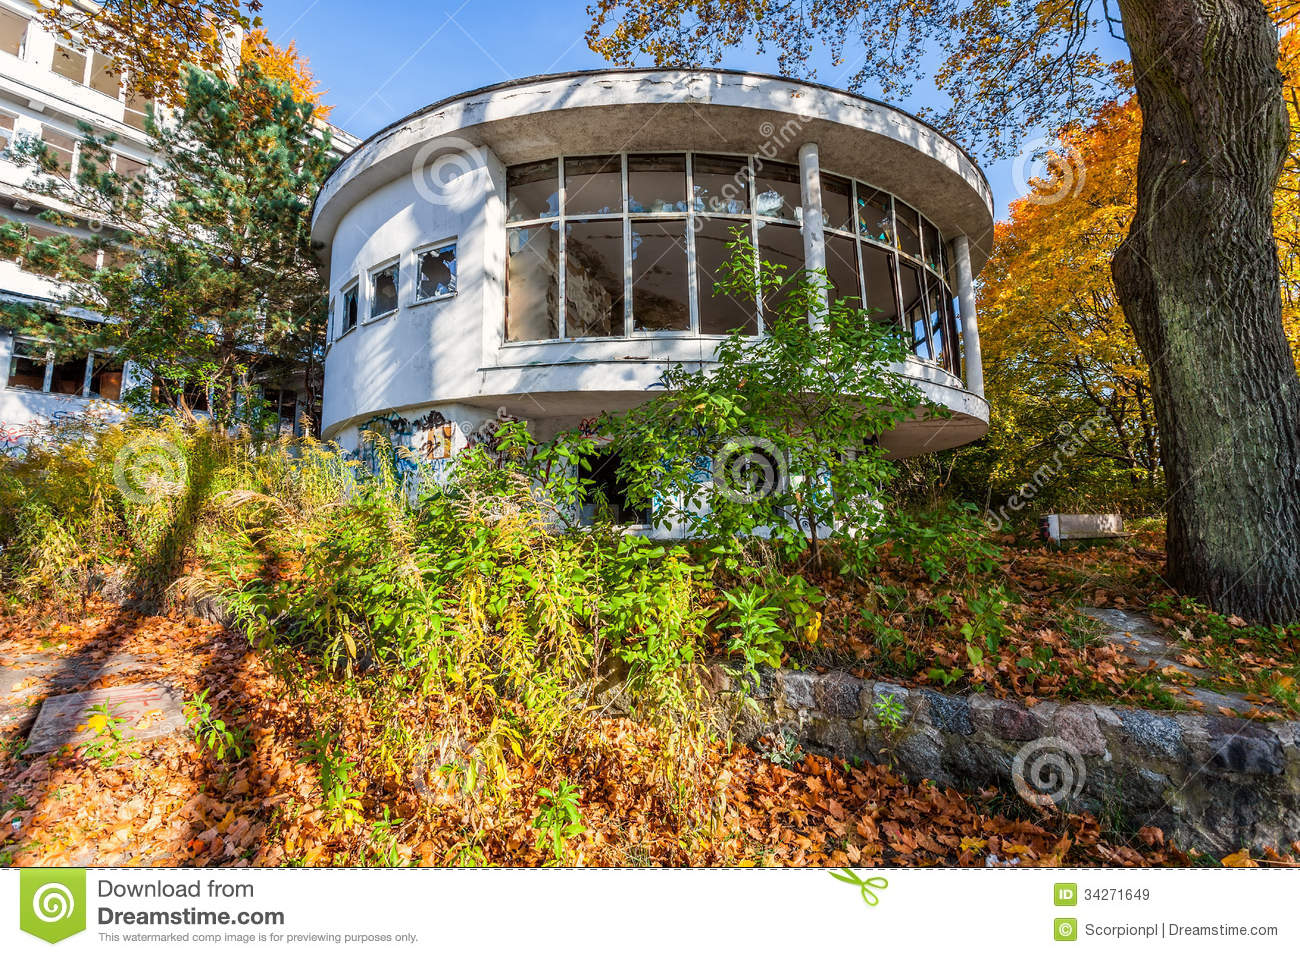 Gdynia Poland  city photos gallery : Abandoned Sanatorium Orlowo Gdynia, Poland Royalty Free Stock Images ...